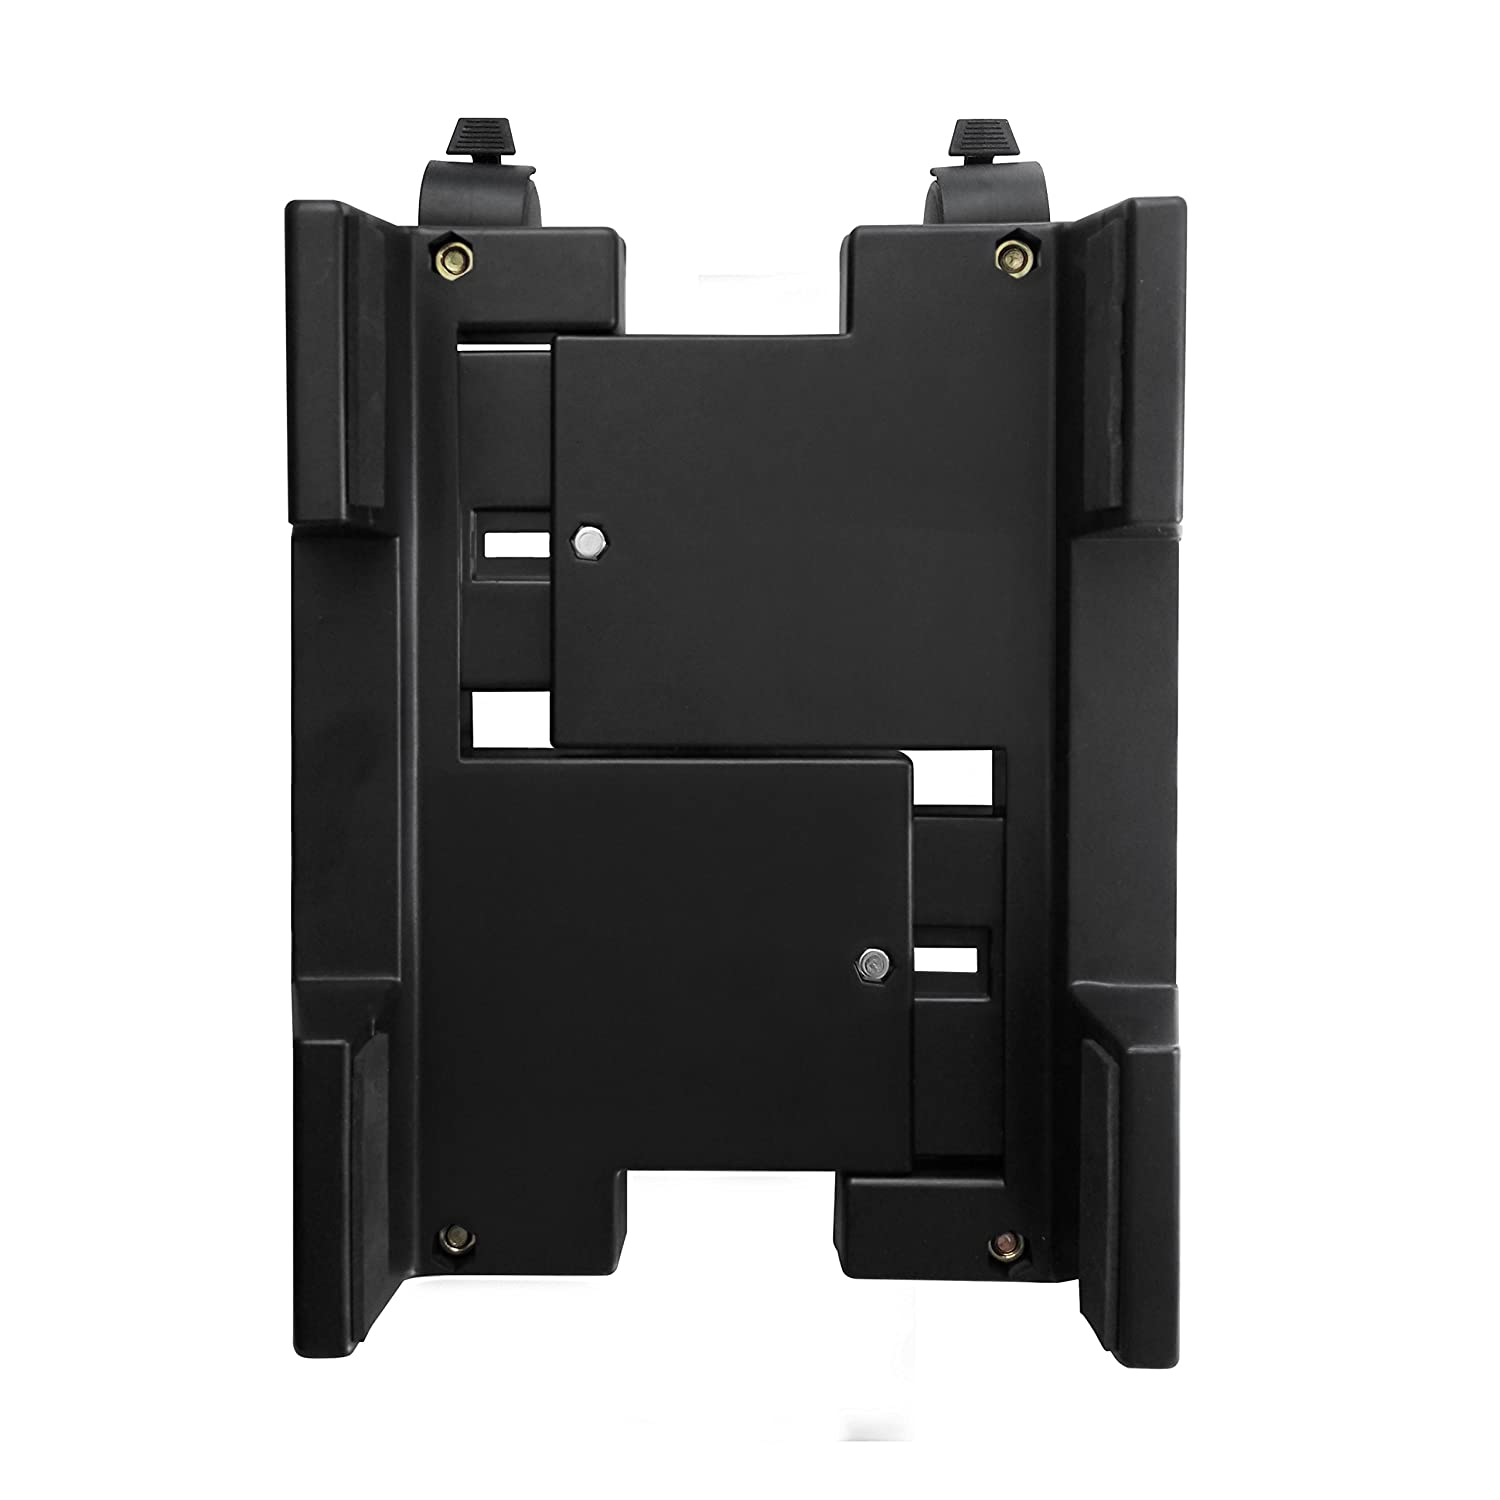 Ewent EW1290 - Soporte (Cart CPU Holder, Escritorio, 8 kg, Negro, ABS sintéticos, Horizontal)